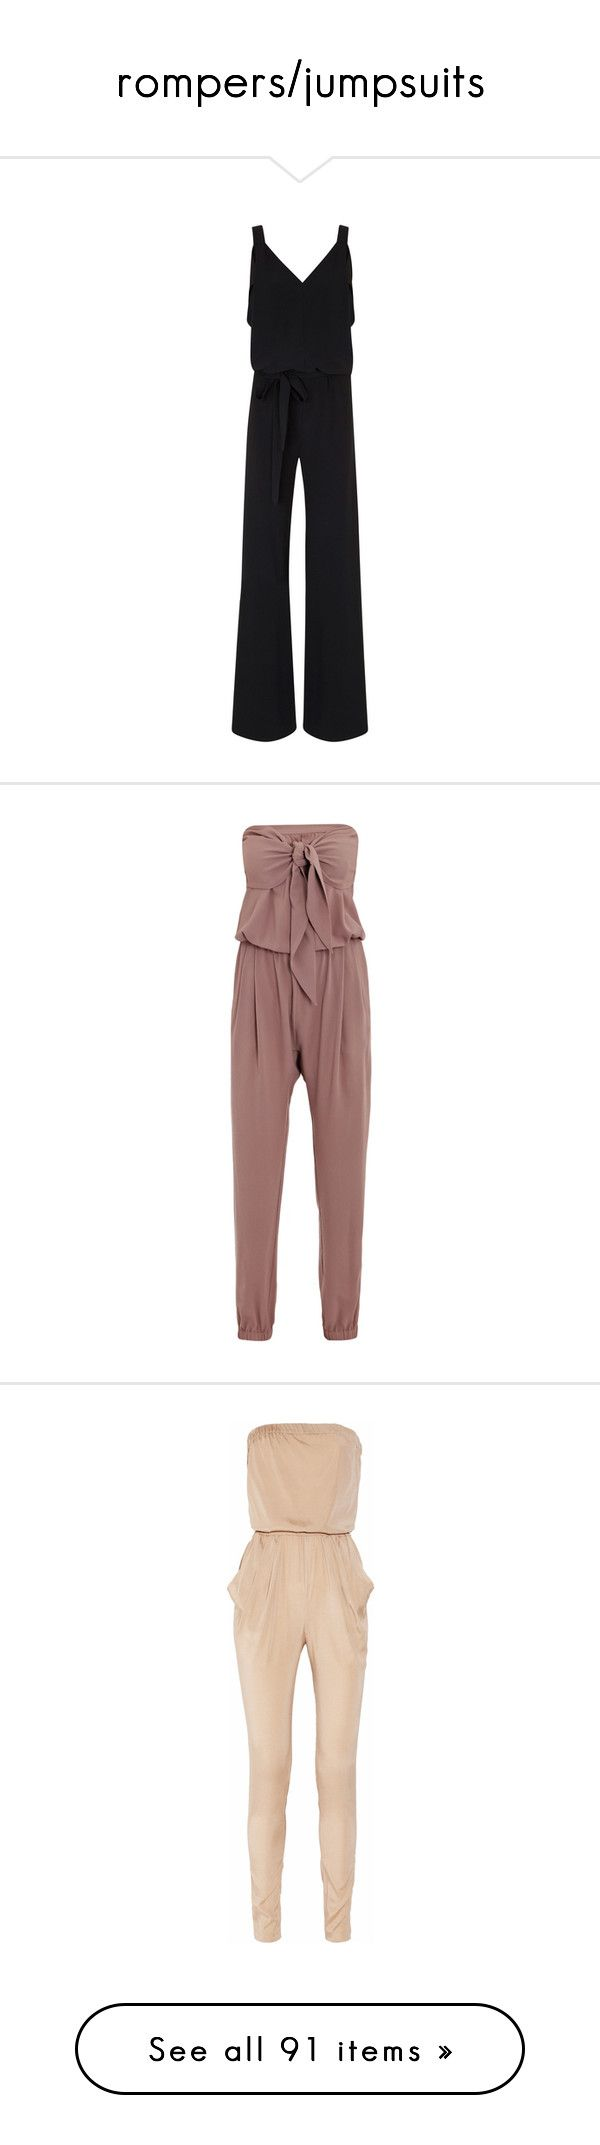 """rompers/jumpsuits"" by missy-smallen ❤ liked on Polyvore featuring jumpsuits, black, jumpsuit, black jump suit, jump suit, maria grachvogel, crepe jumpsuit, jumpsuits & rompers, rompers and pants"